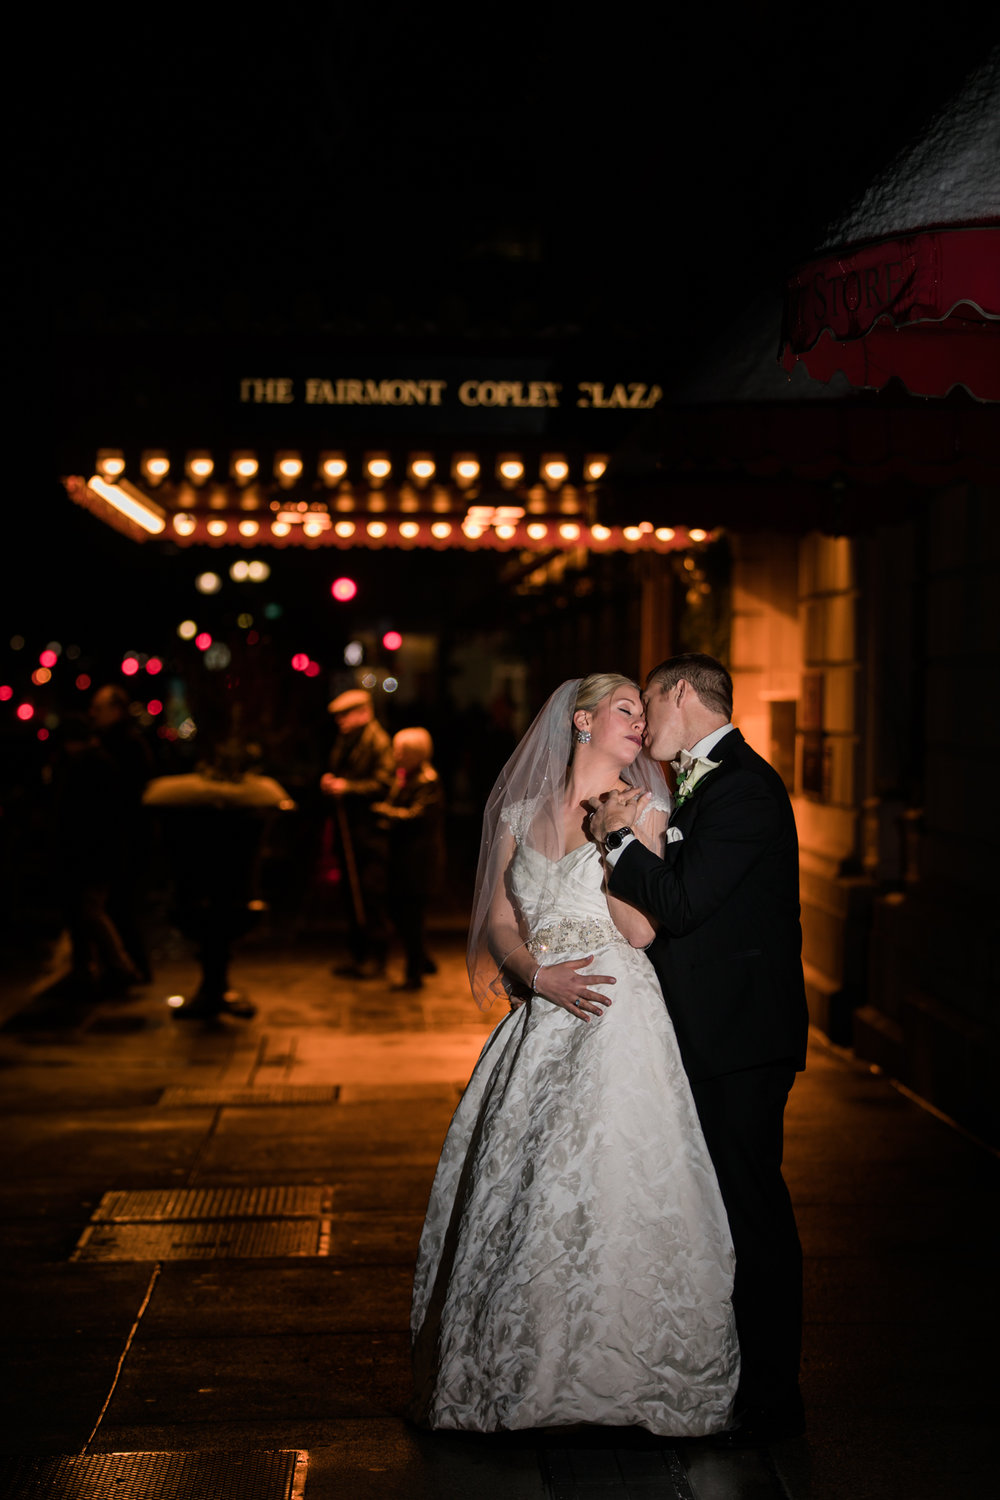 Boston-Fairmont-Copley-Plaza-Wedding-AmandaMorgan-Photography-78.jpg